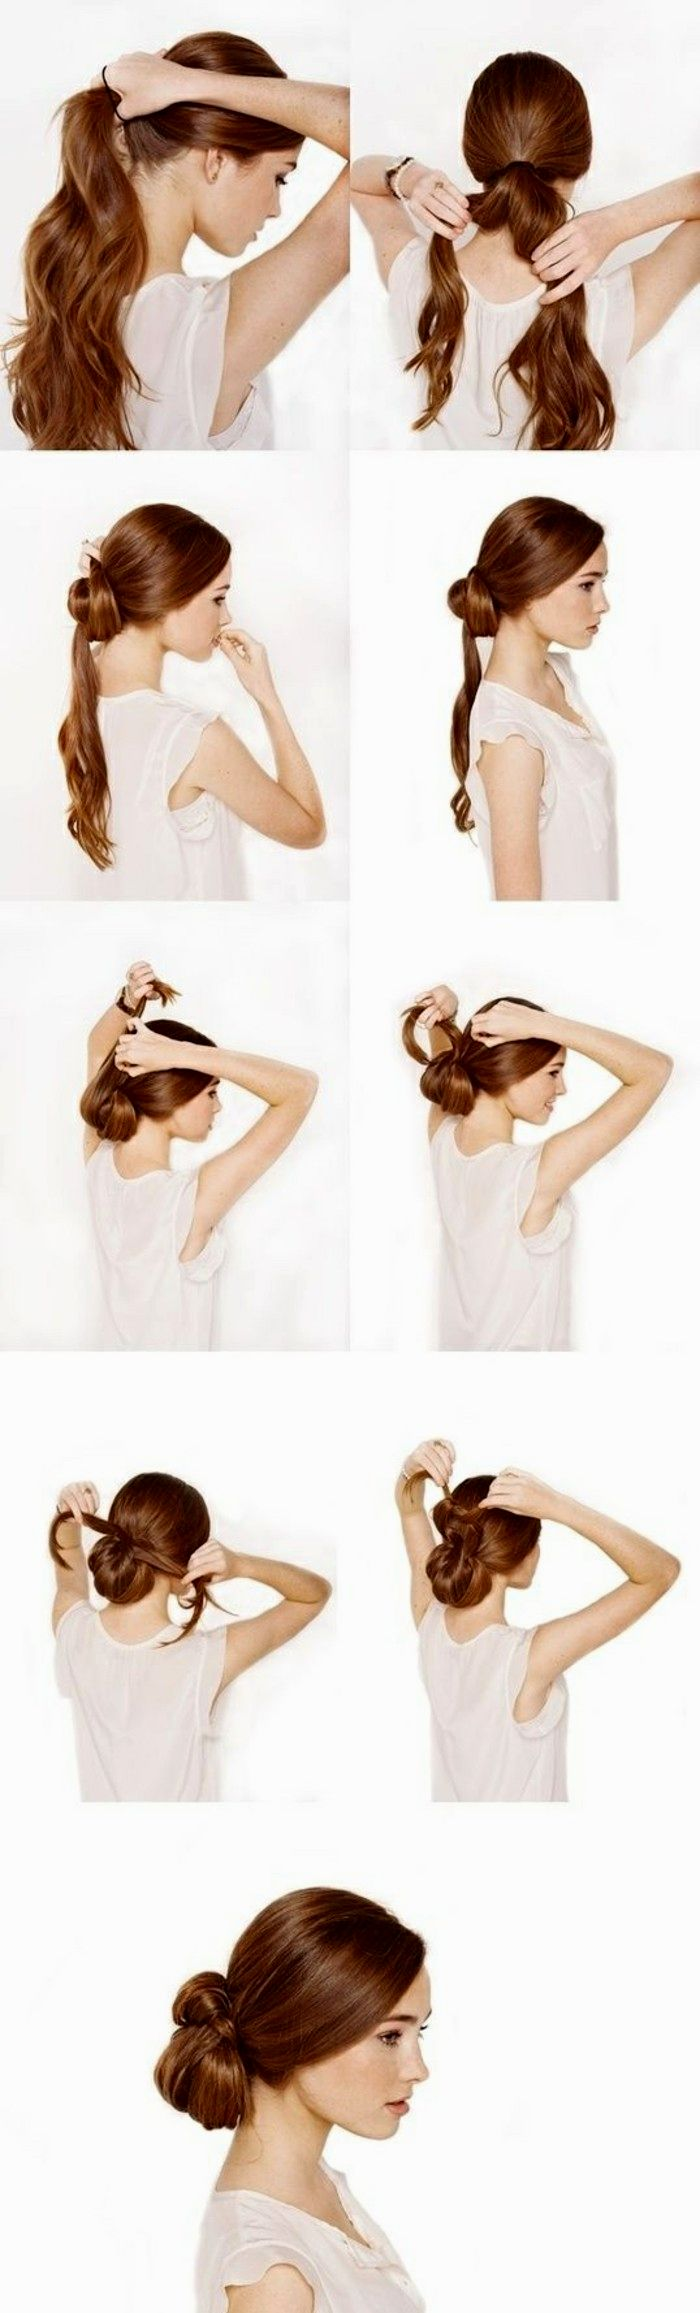 lovely long hair petting picture-Wonderful Long Hair Pinning Architecture